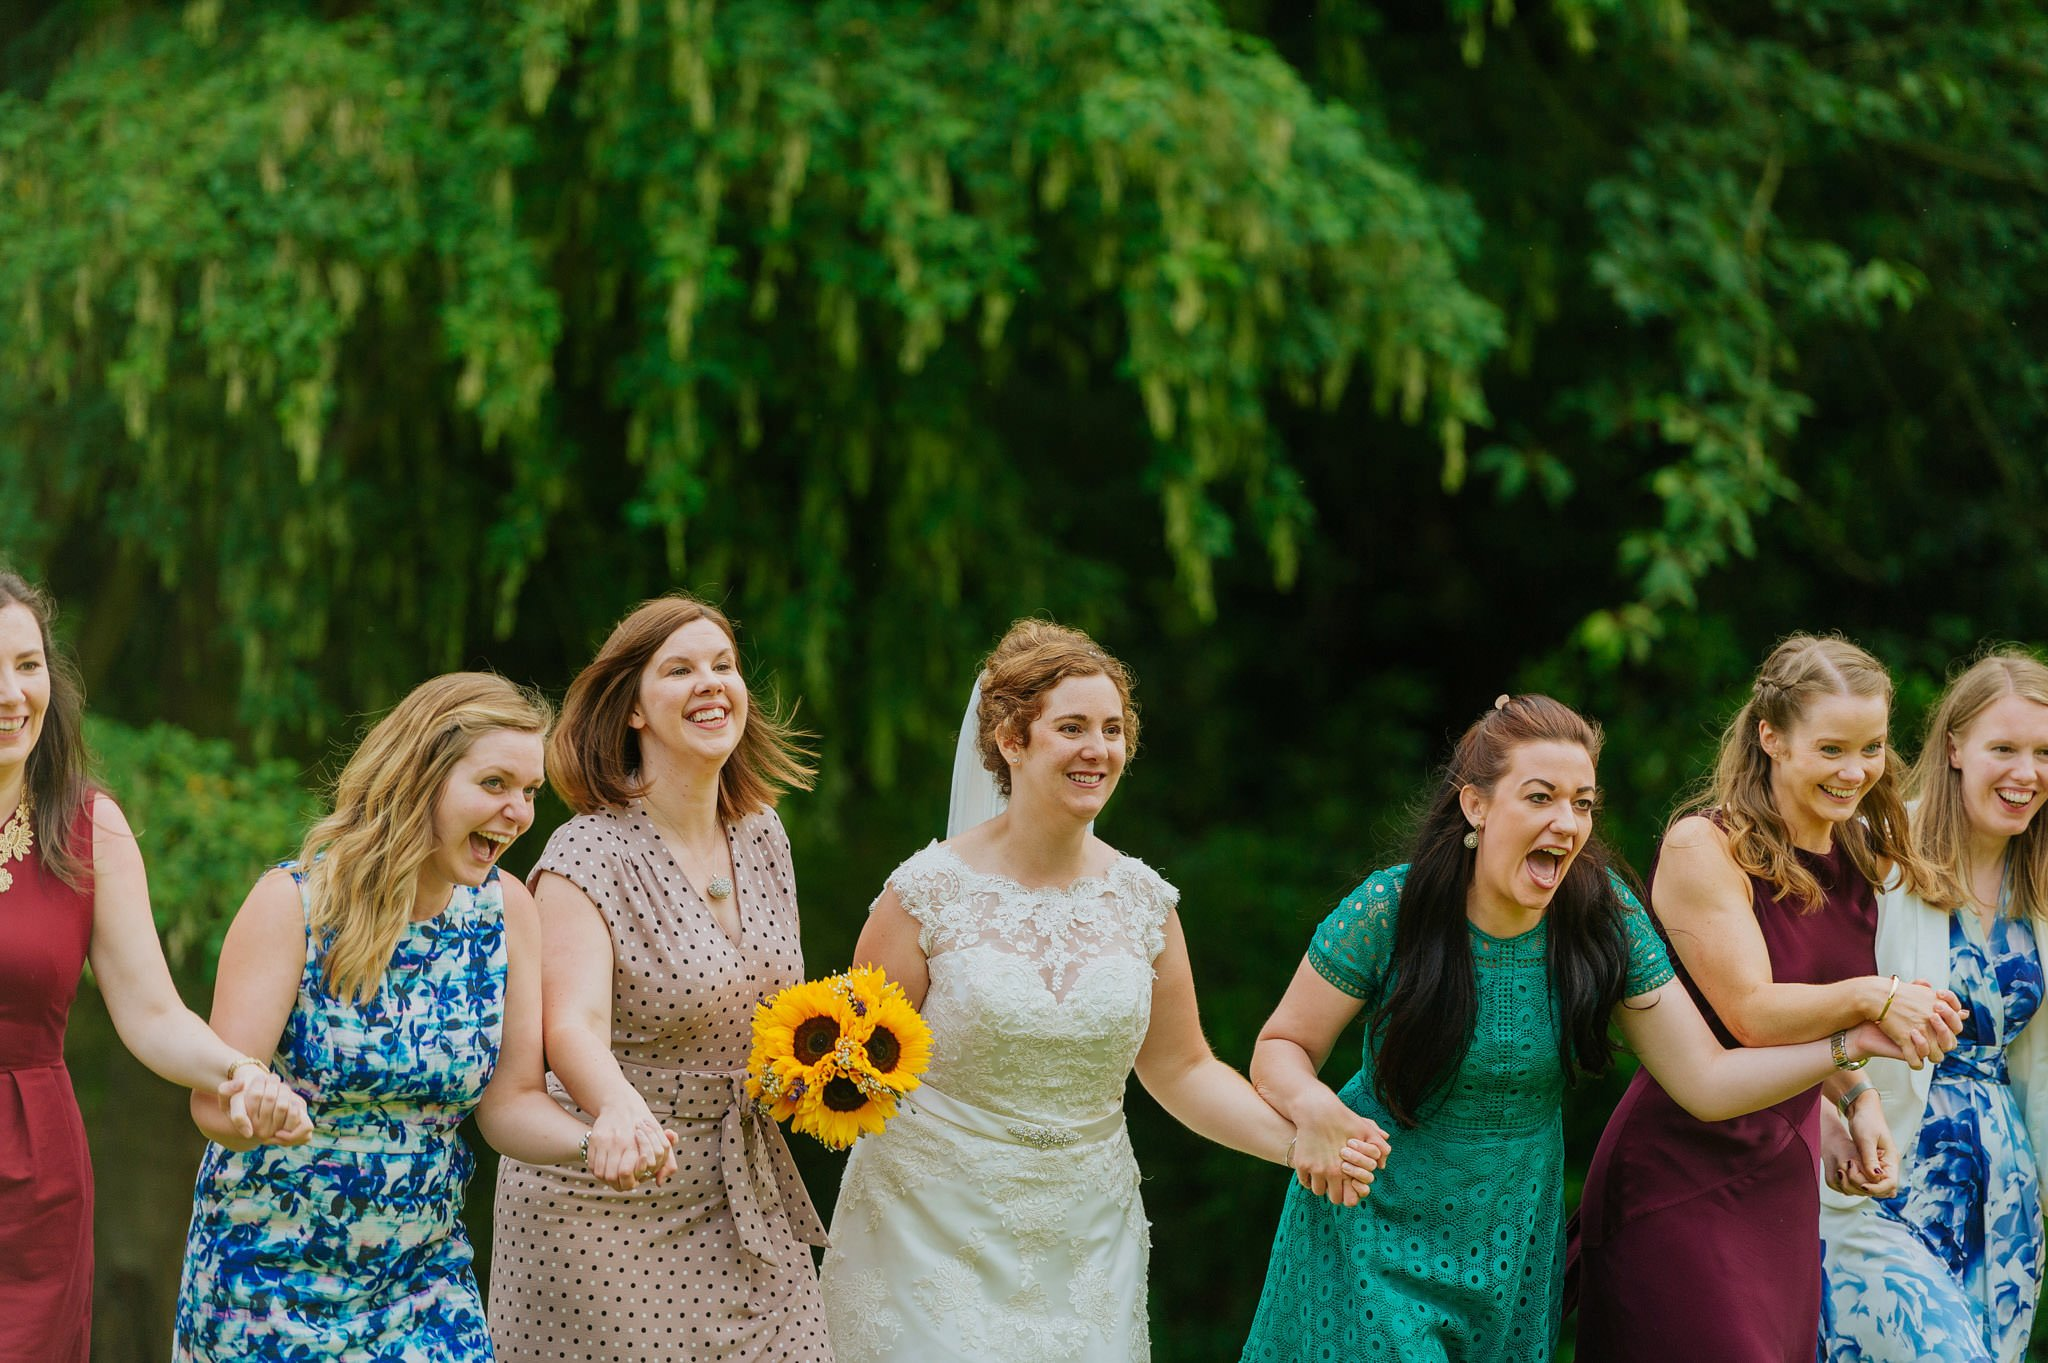 Wedding photography at Homme House in Herefordshire, West Midlands 70